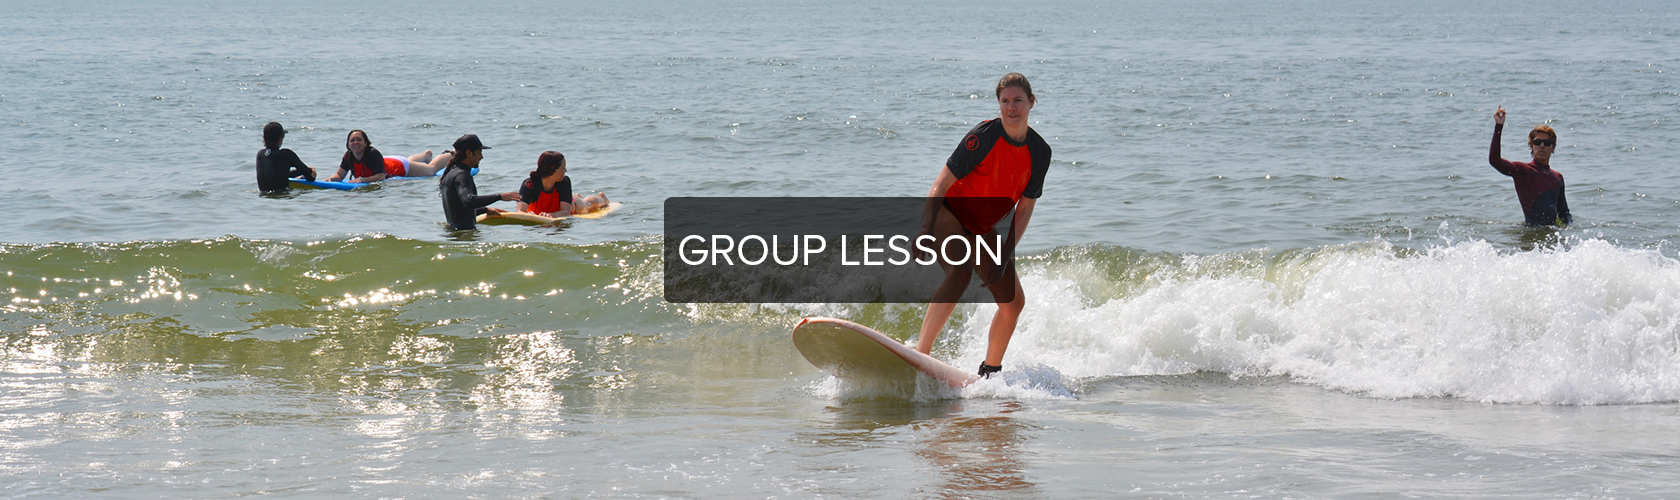 Group Lesson Slider 2018 7.jpg